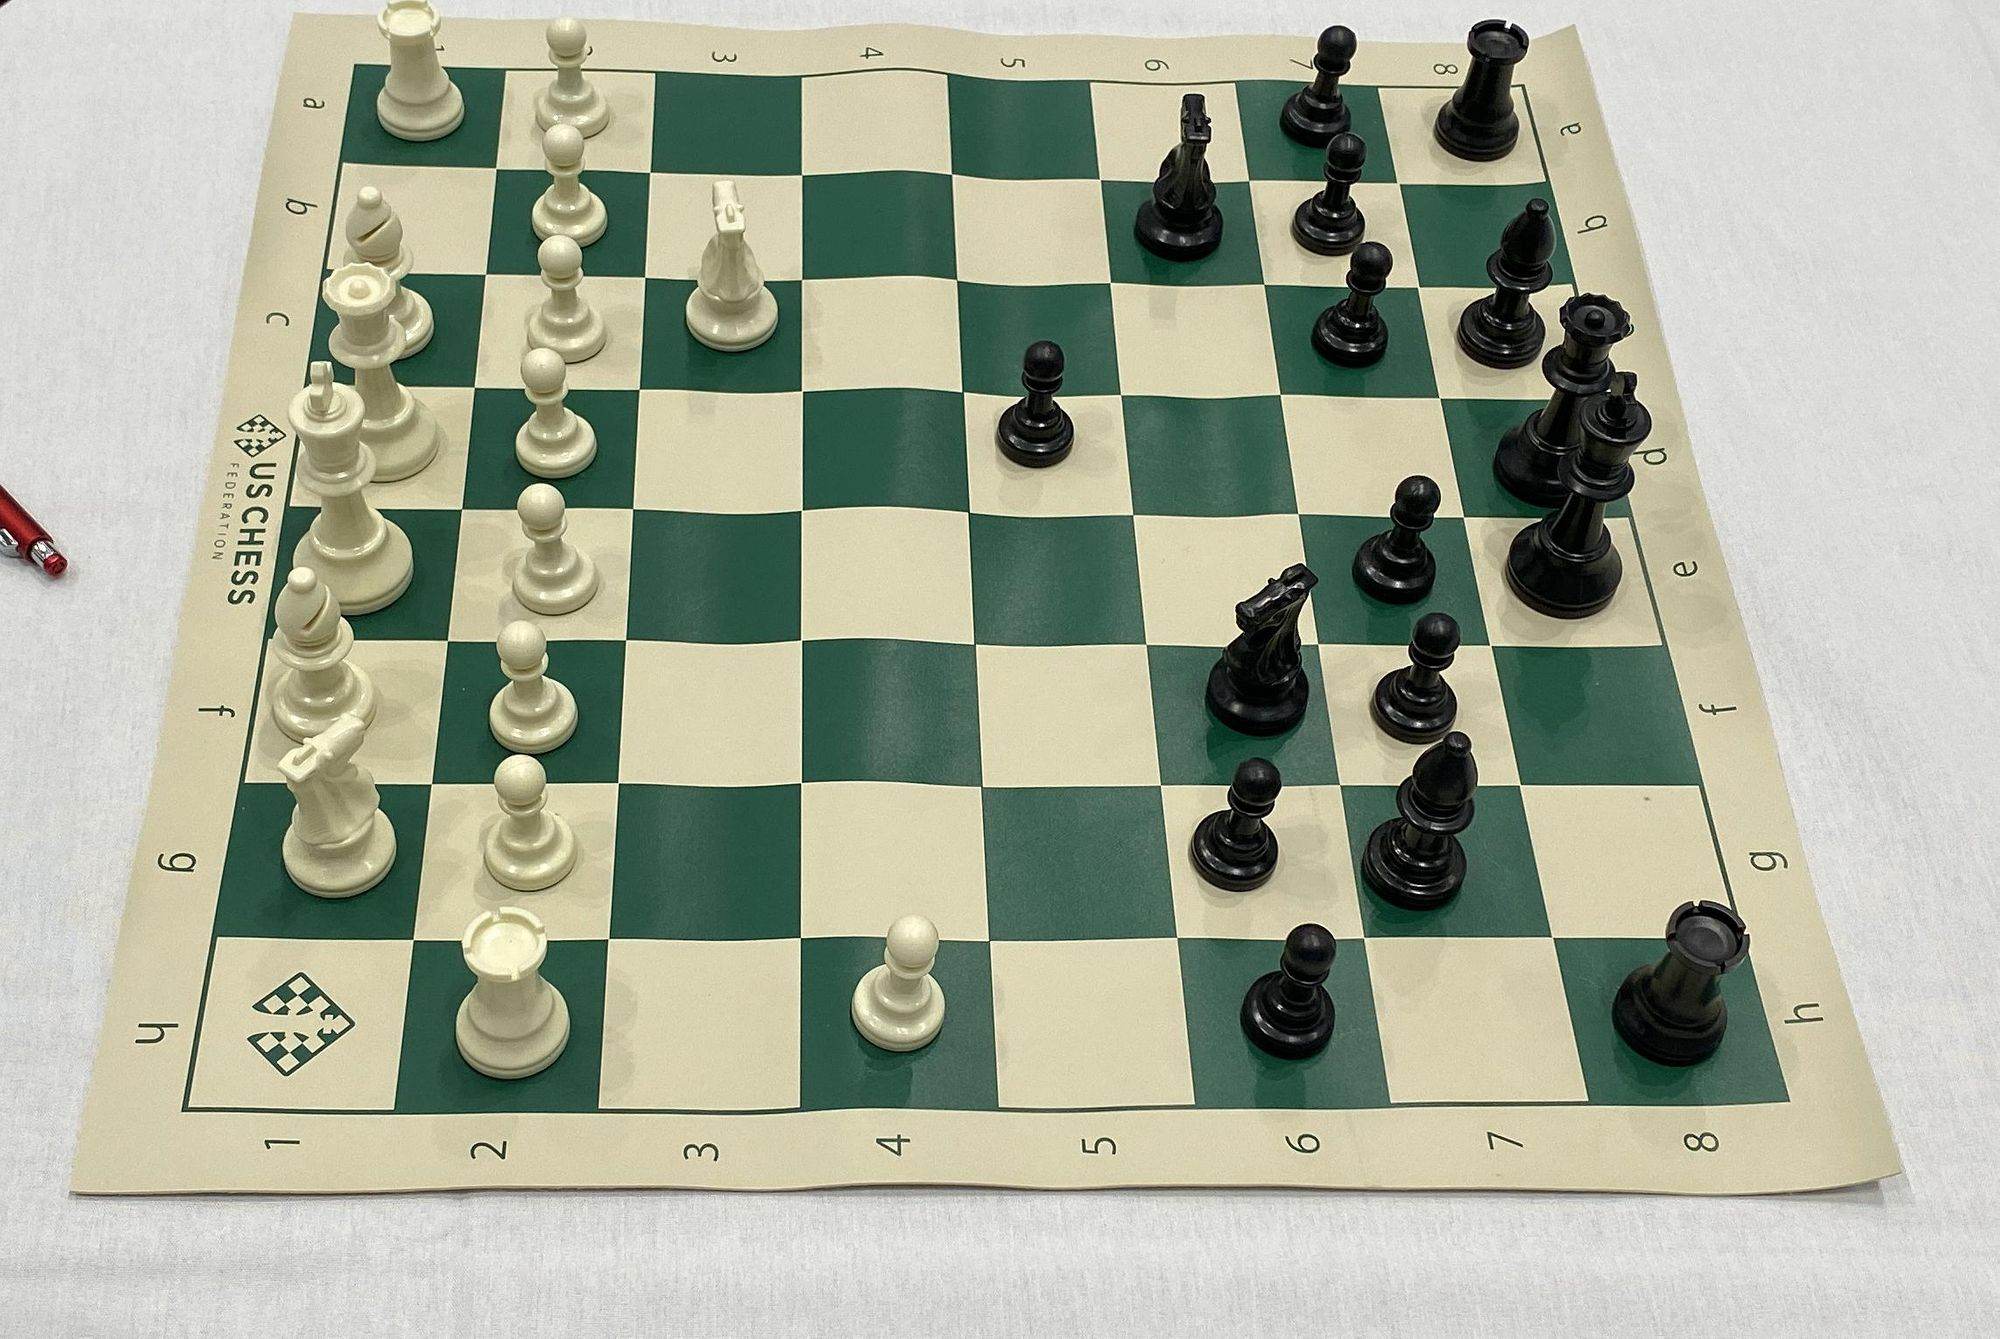 Chess board from the US Chess Federation